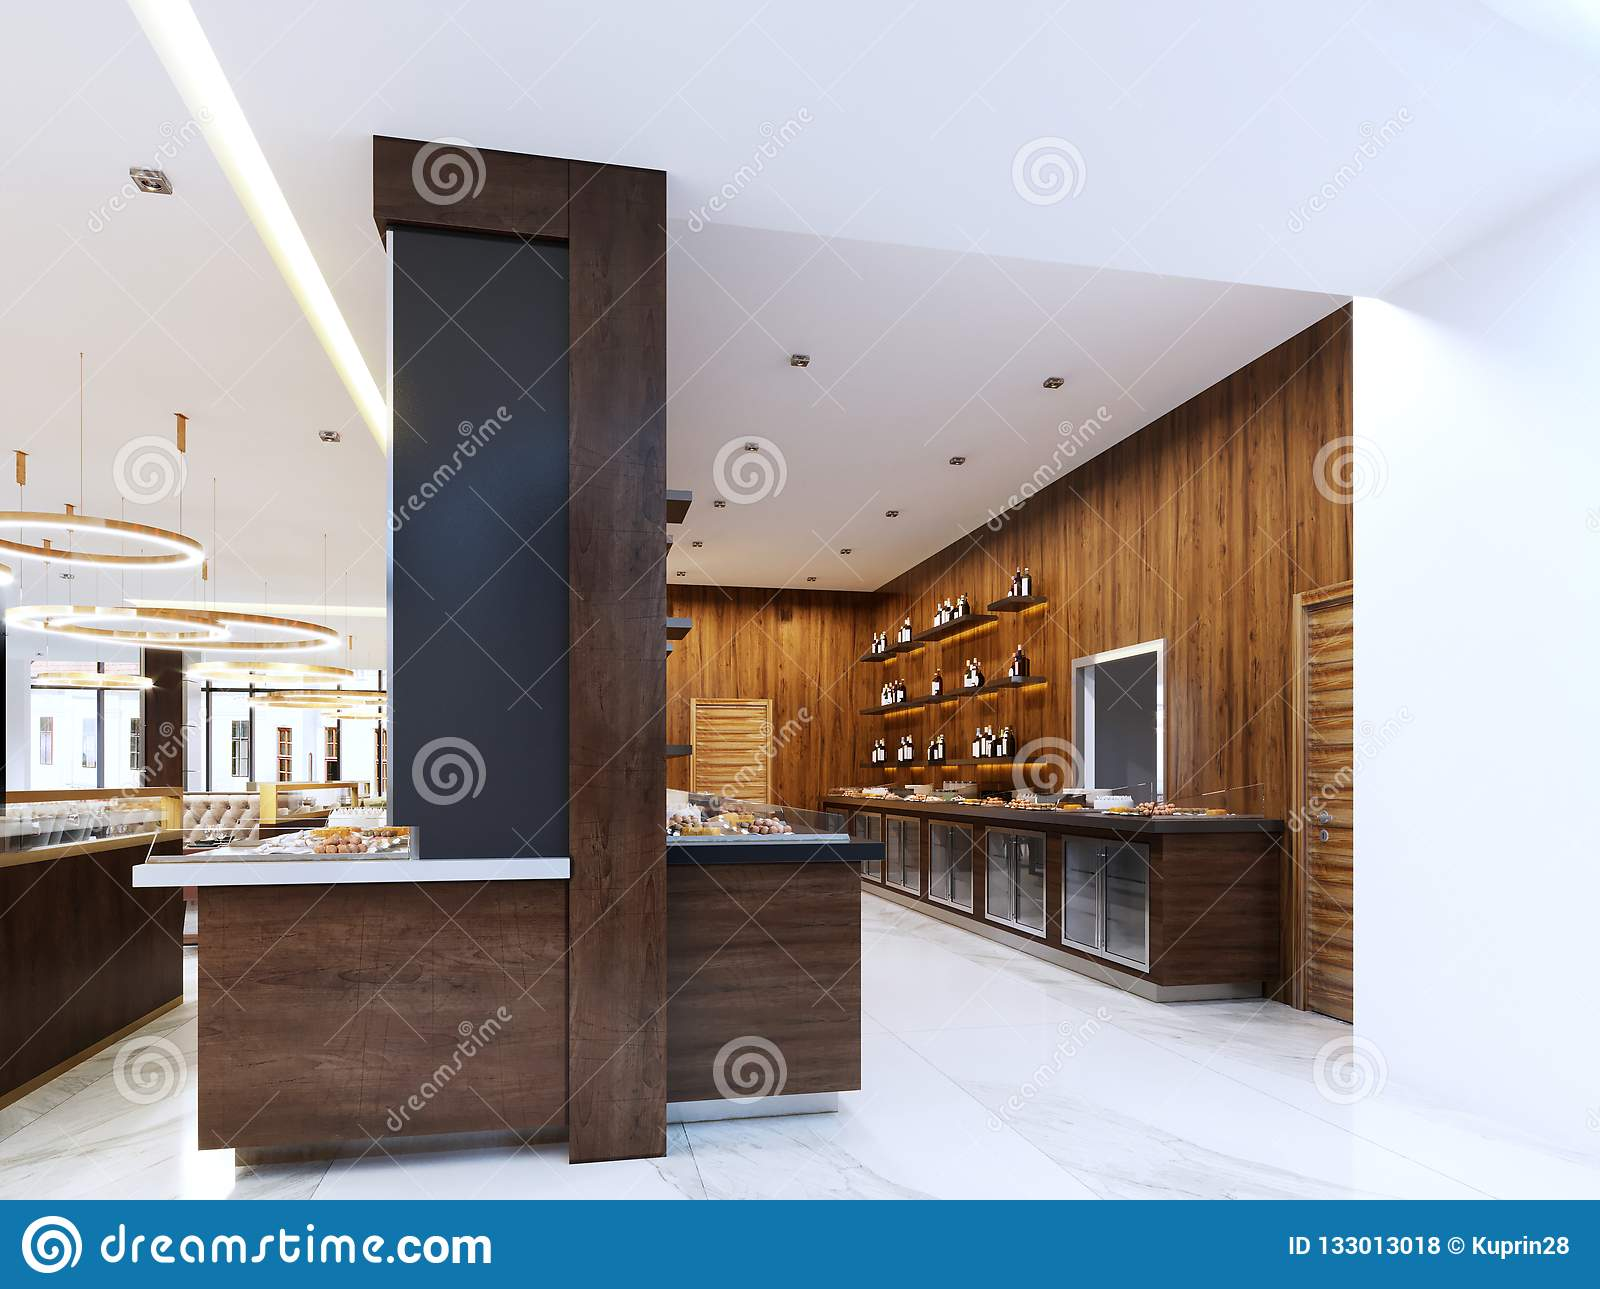 Buffet Modern Restaurant In Contemporary Style Cold Cabinets And Decorative Shelves With Bottles Restaurant Design Stock Illustration Illustration Of Dining Decorative 133013018